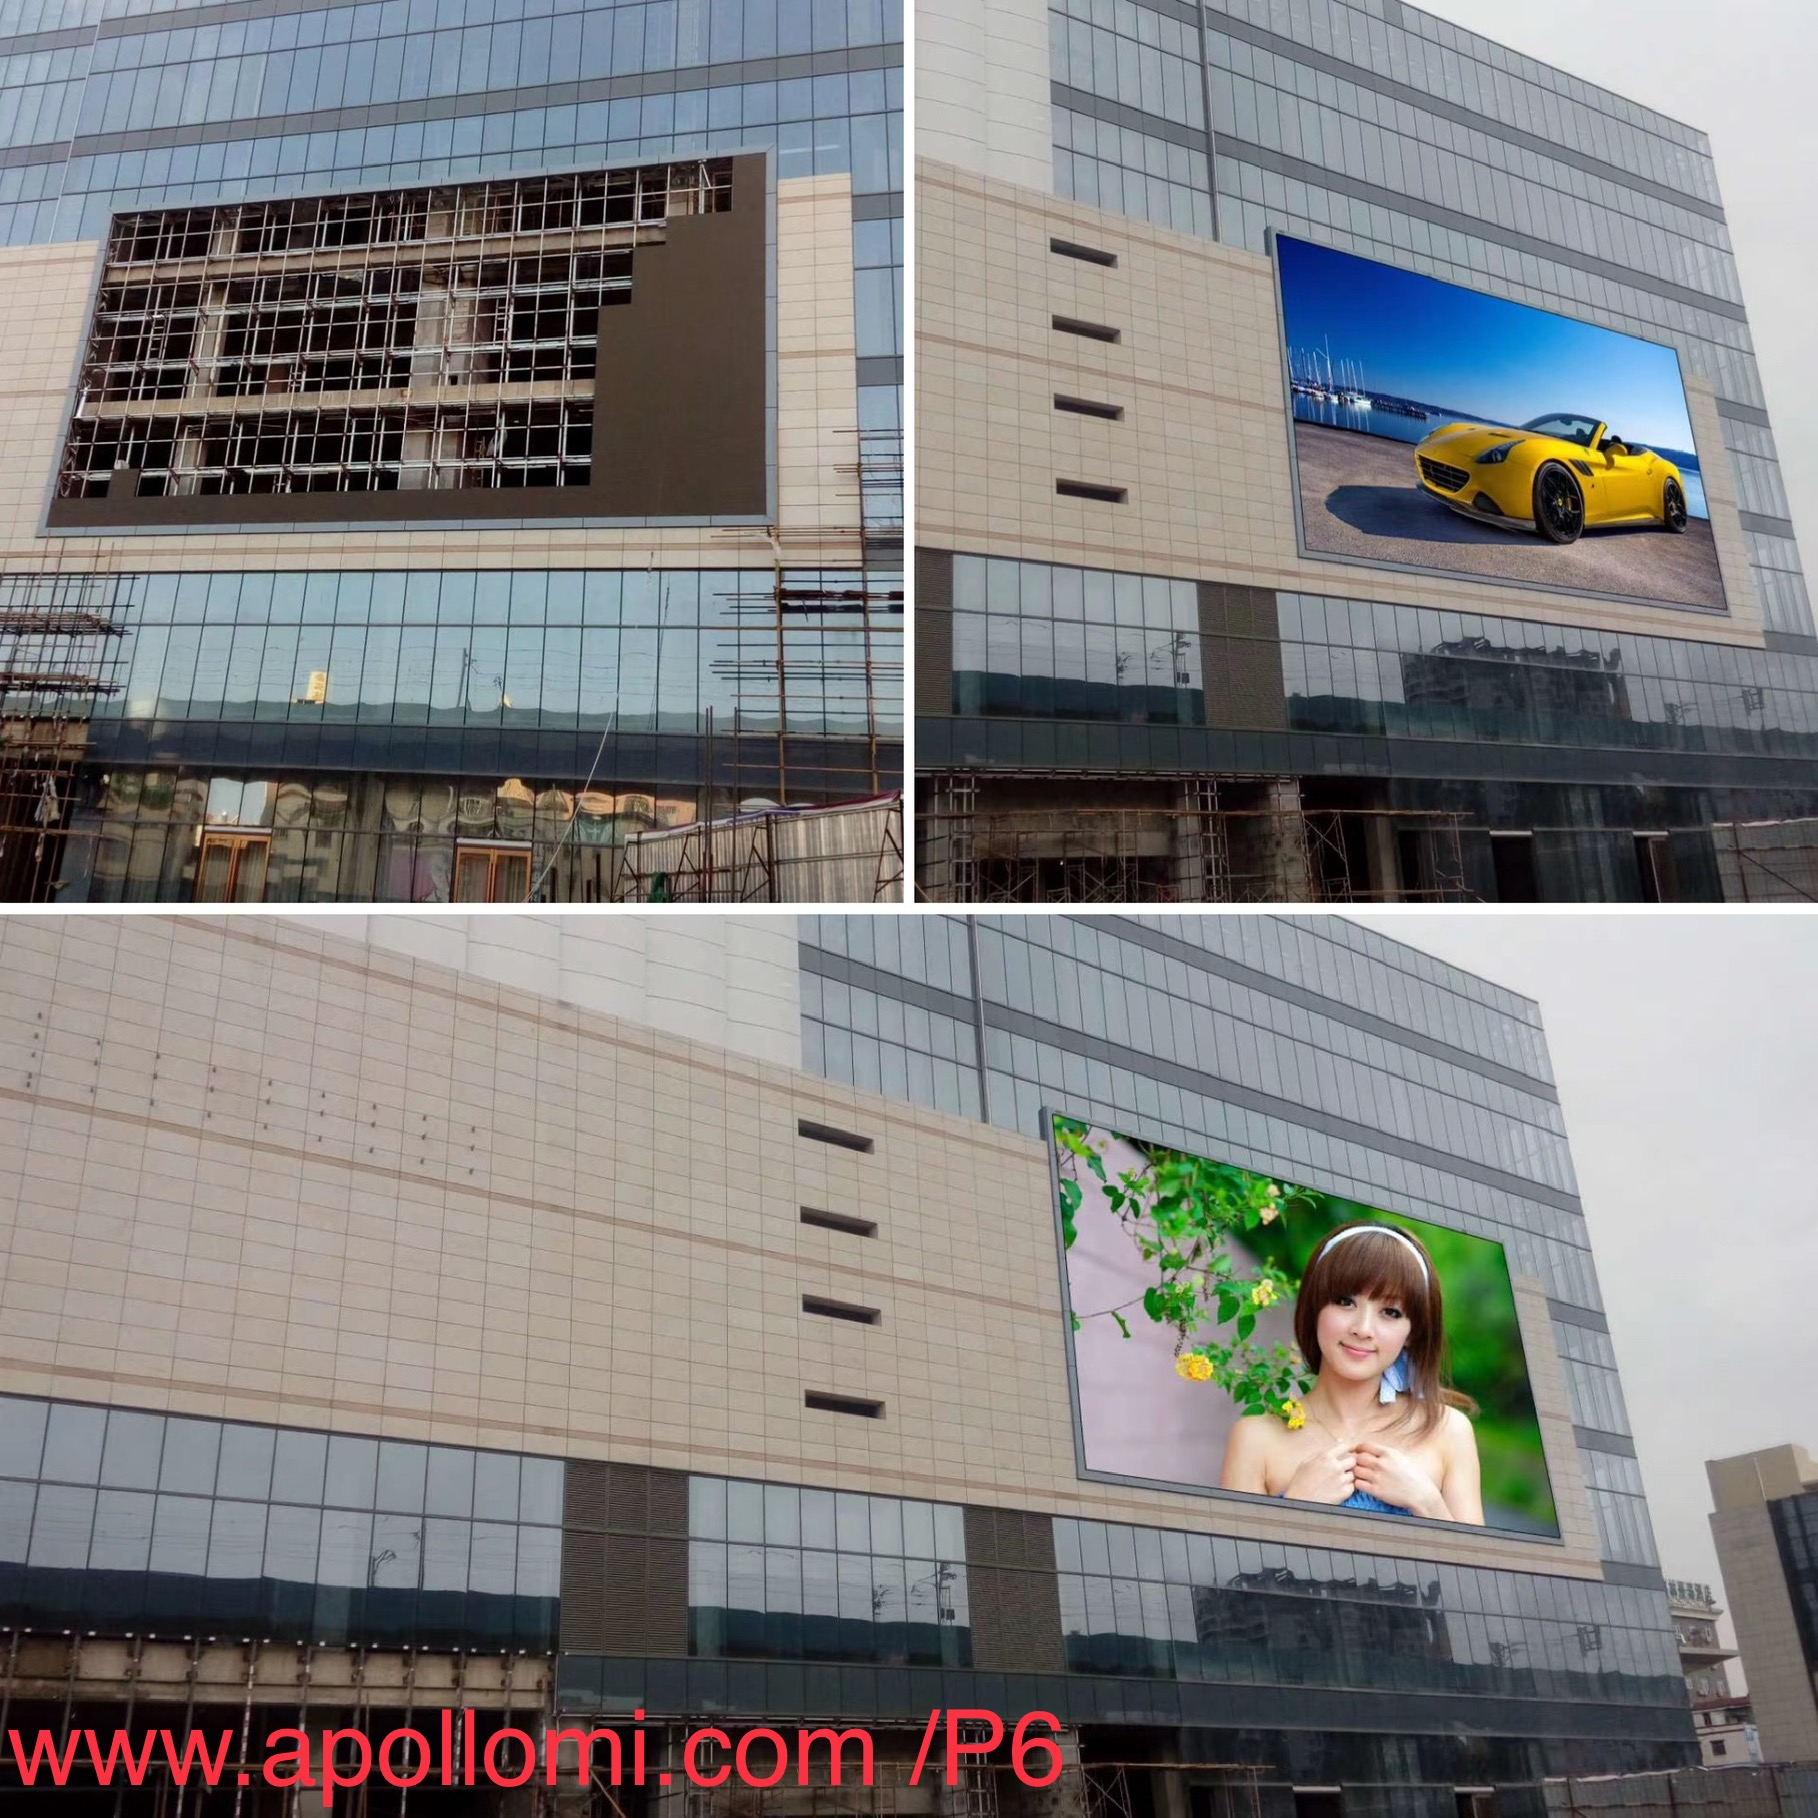 Outdoor P6 Video Super LED Wall